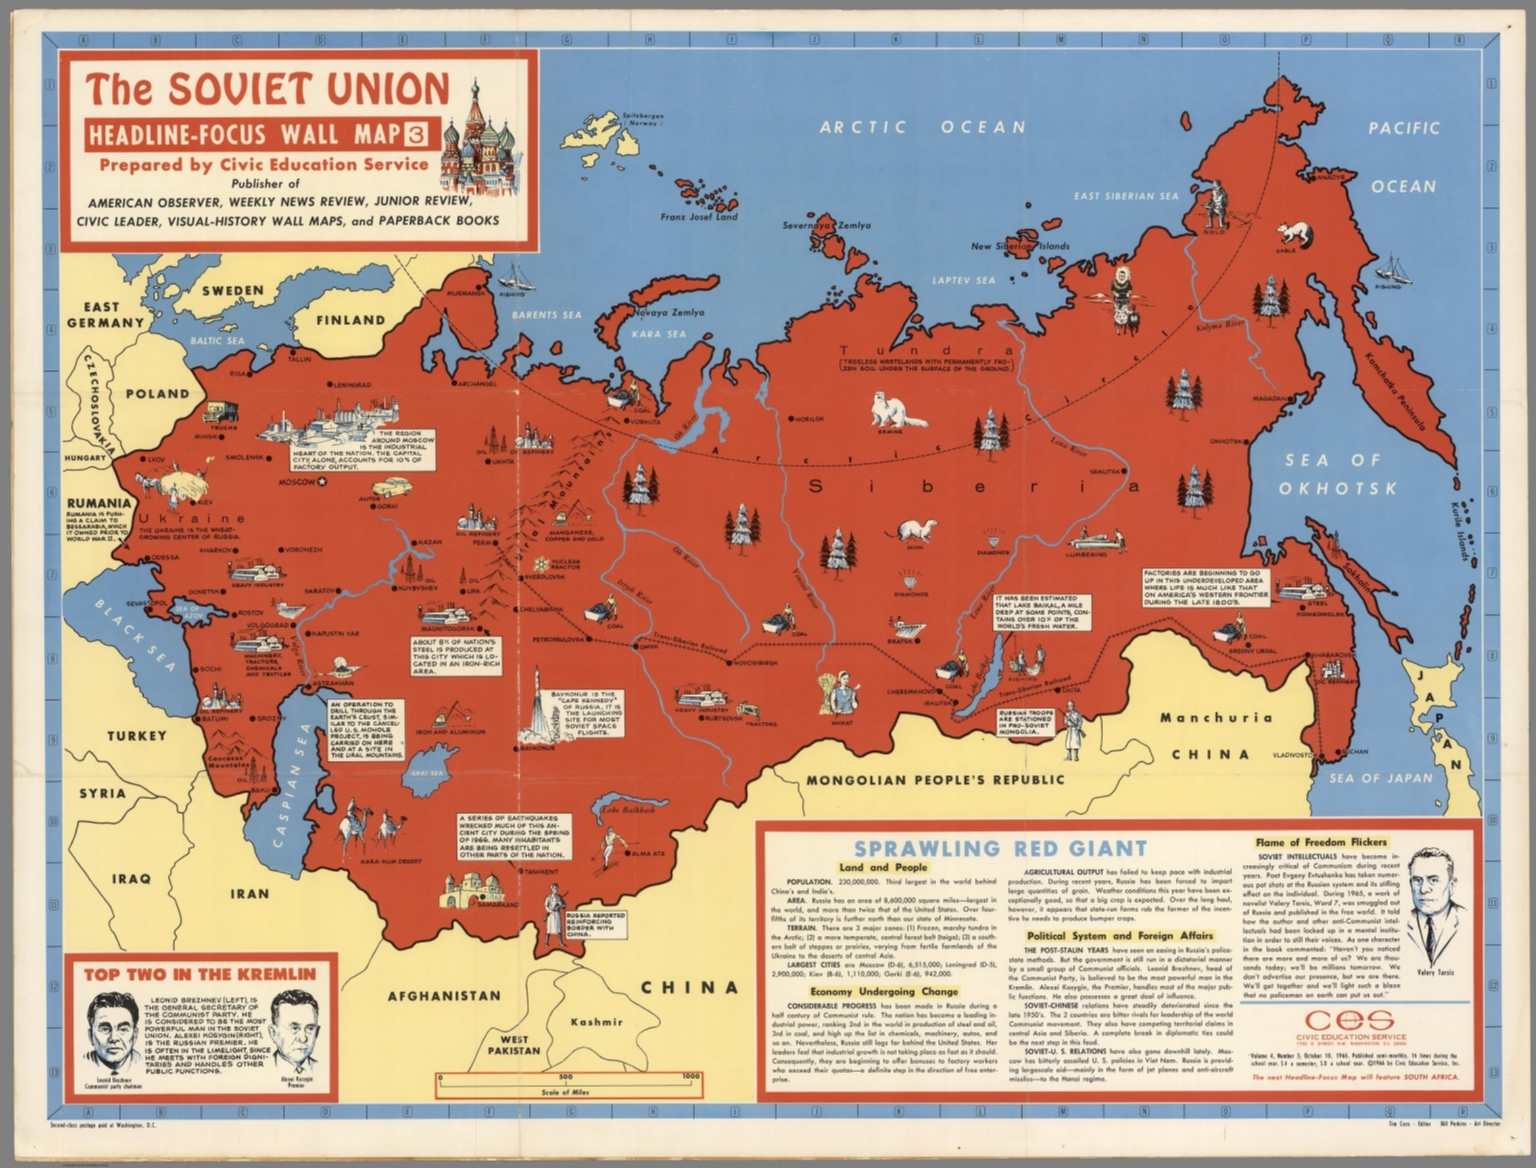 The Soviet Union HeadlineFocus Wall Map Sprawling Red Giant - Where can i buy a wall map